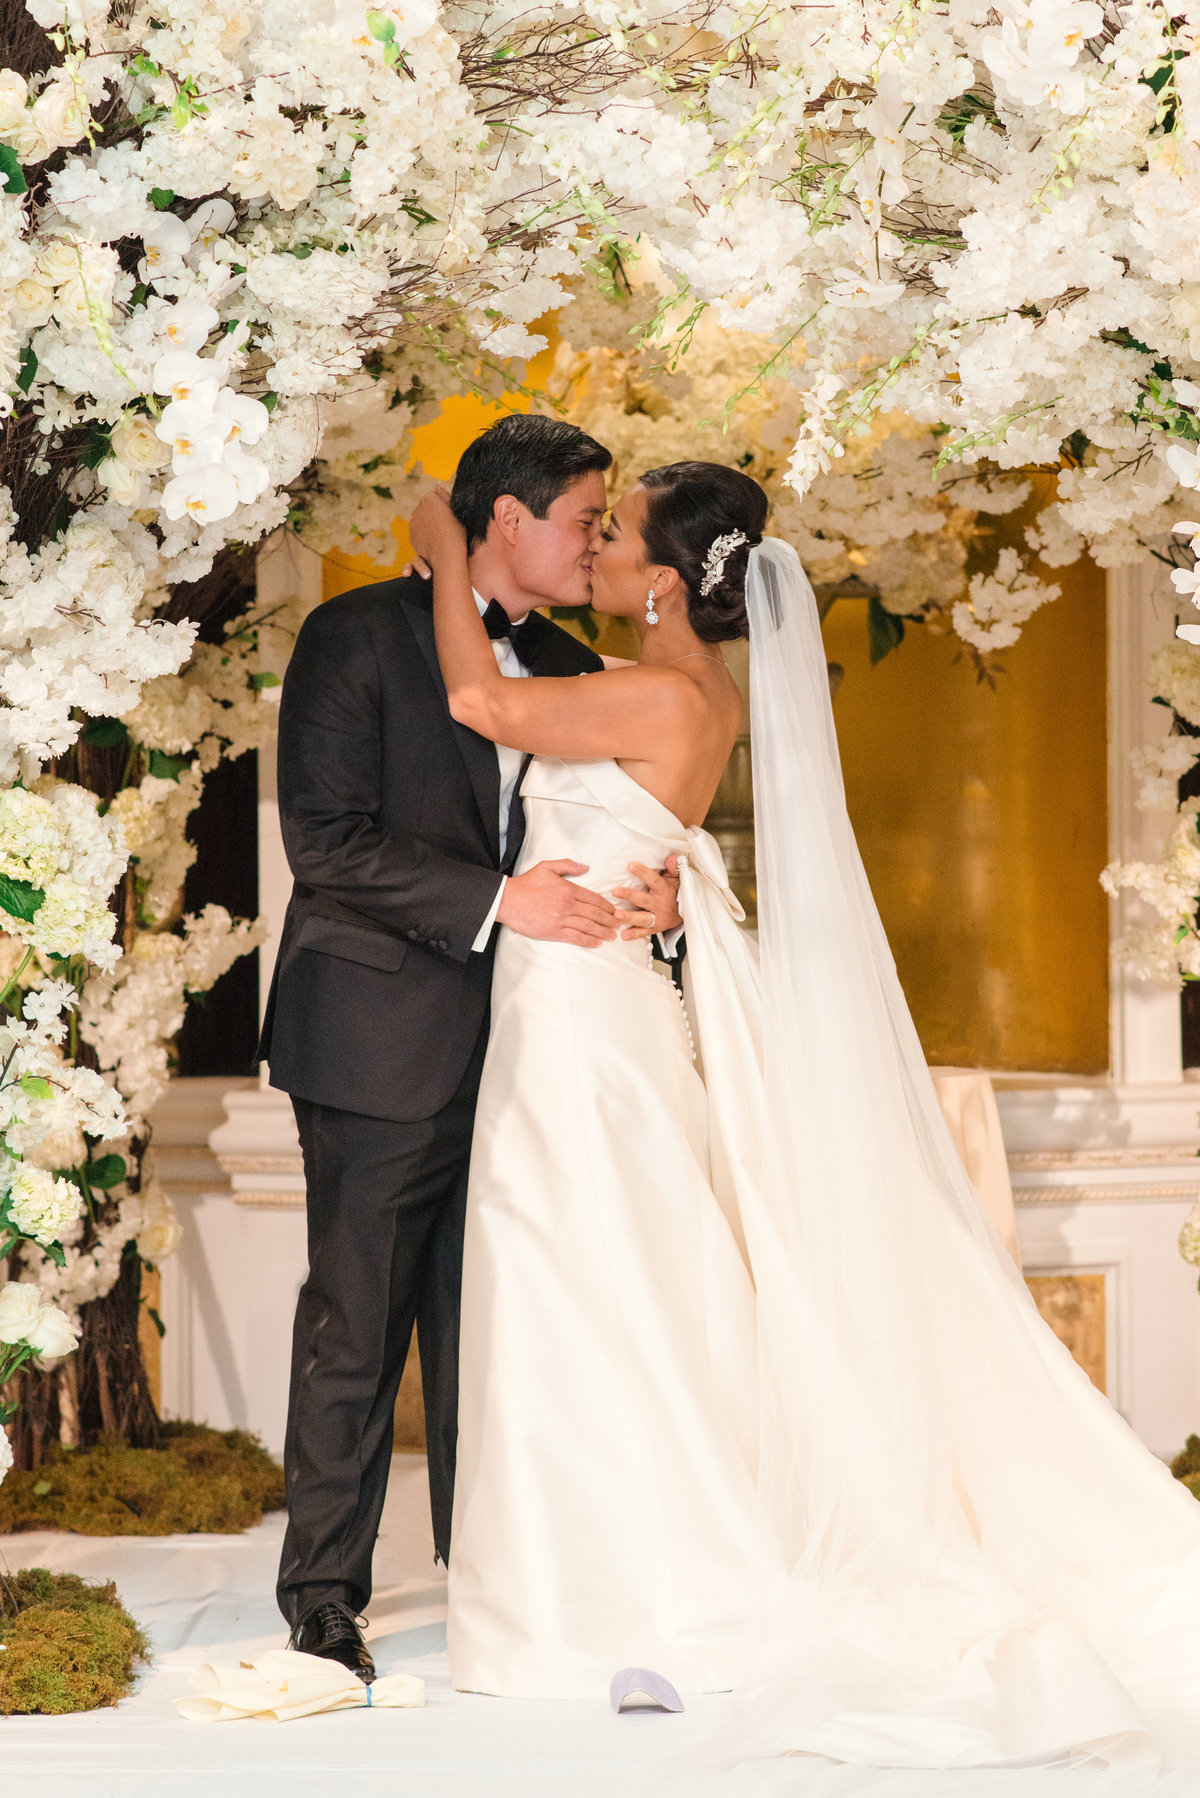 photo of bride and groom kissing under white flowers during wedding at The Garden City Hotel